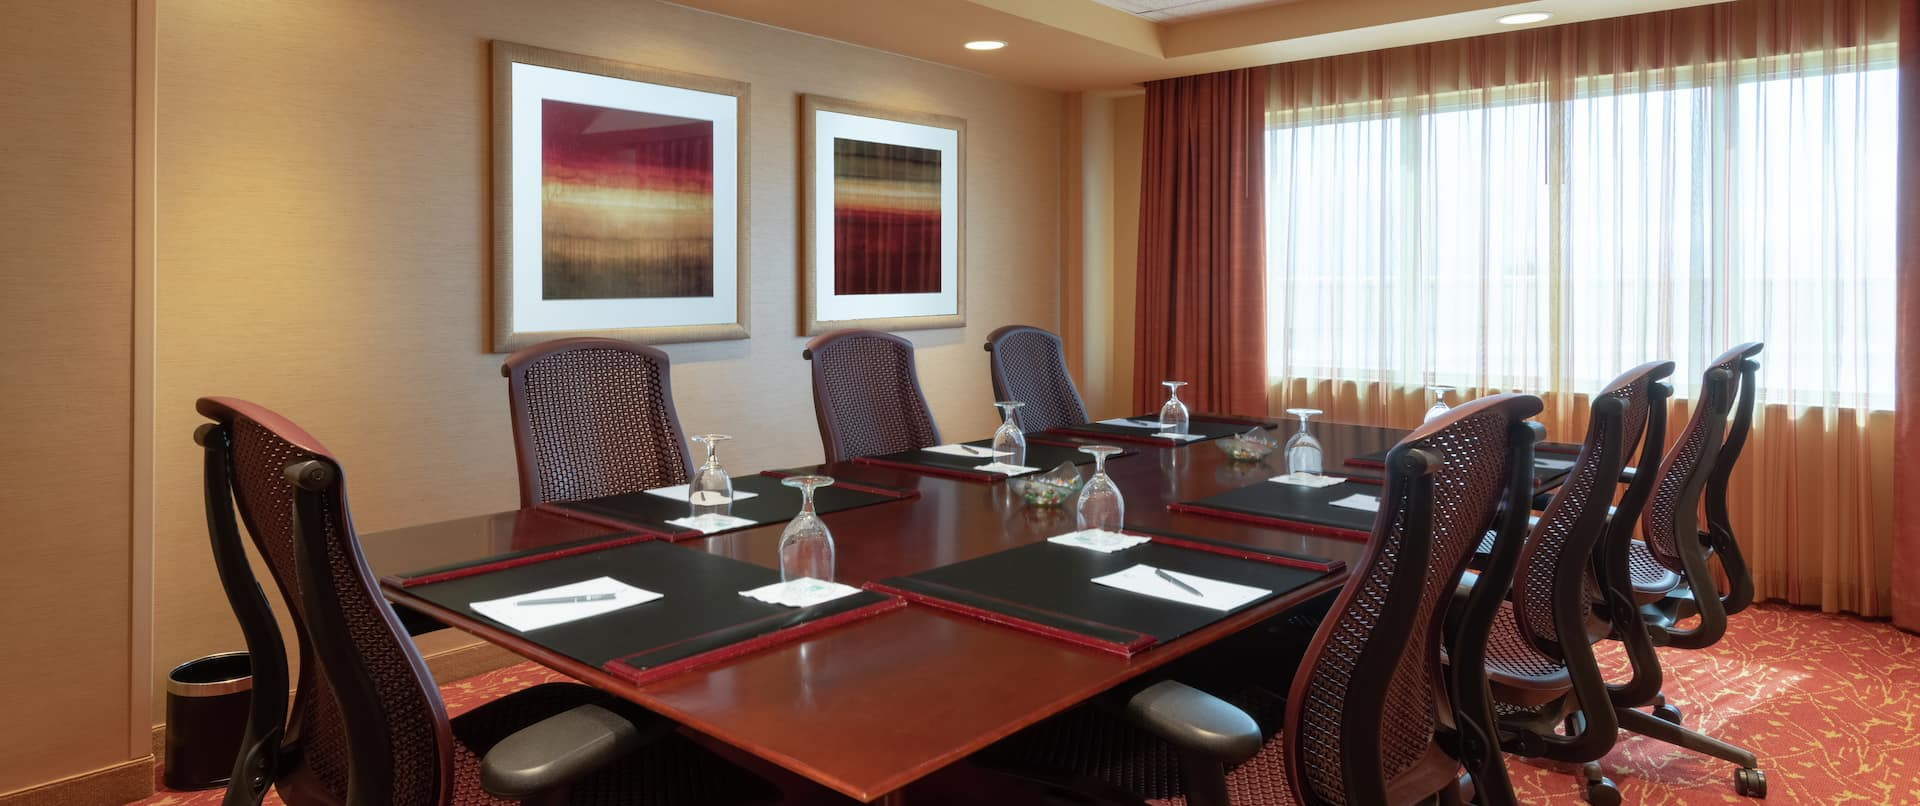 Conference Table and Chairs in Hospitality Suite